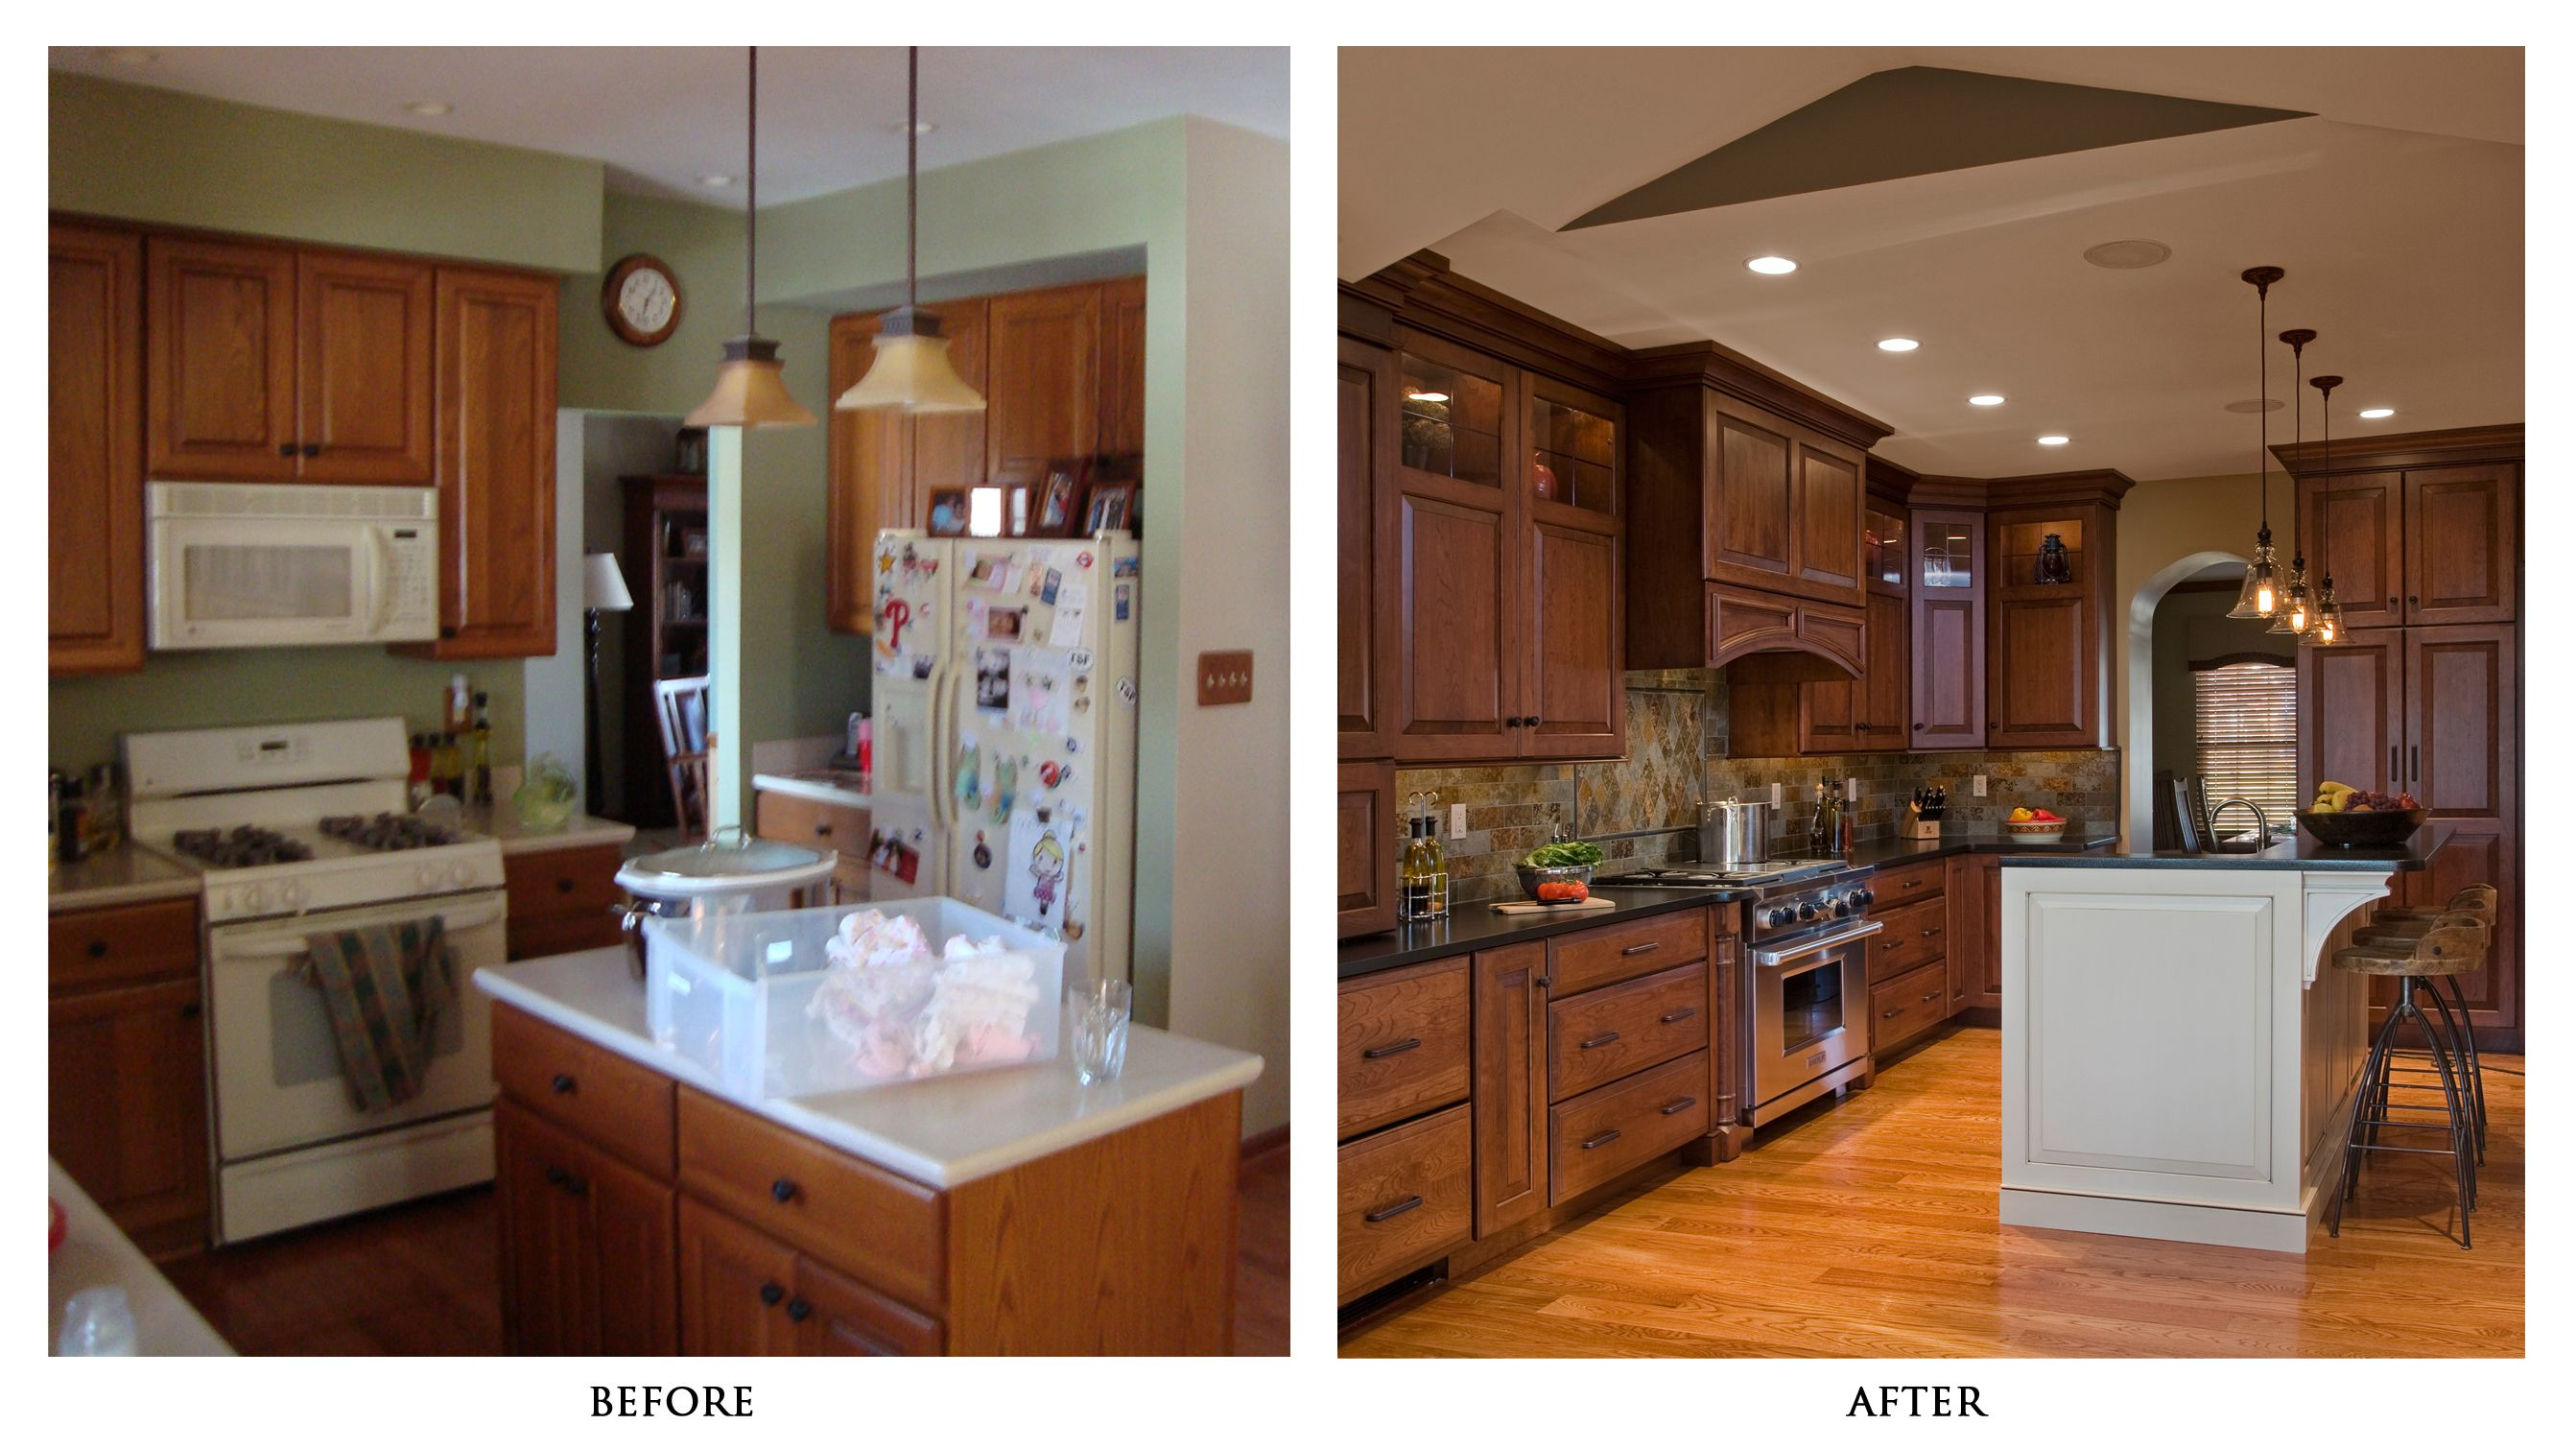 Kitchen Remodeling Idea Kitchen Remodel Before And After Google Search 1960s Remodel